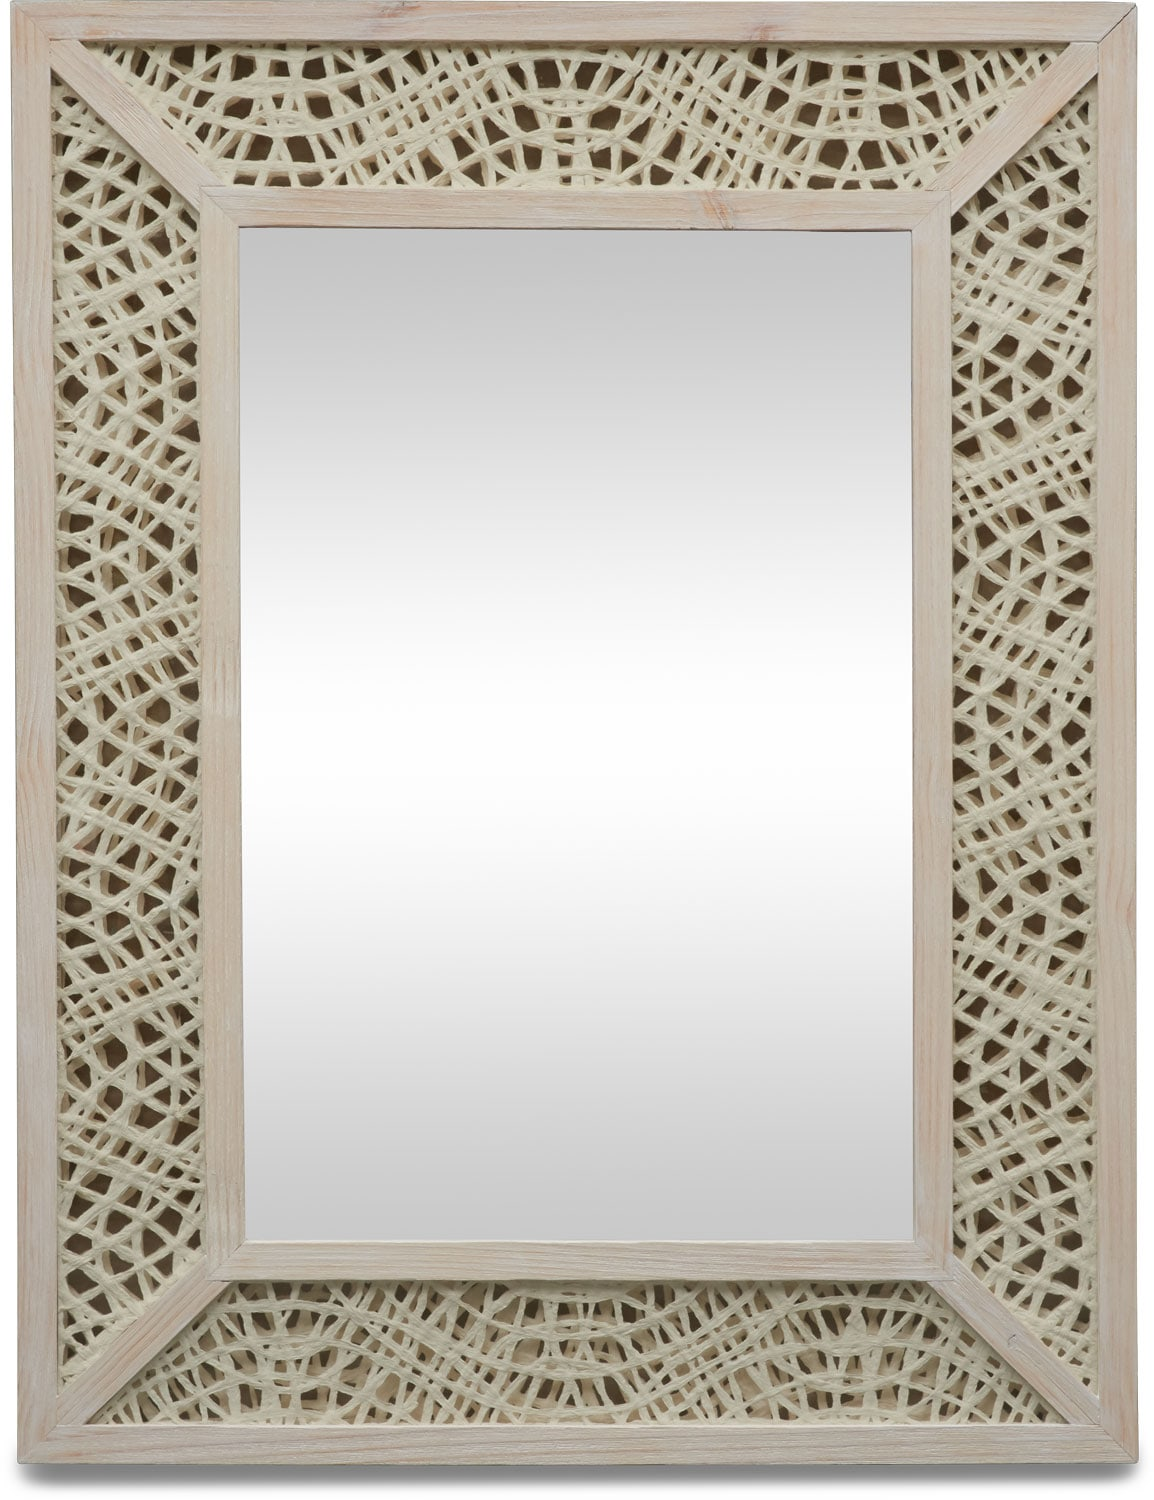 Home Accessories - Paper Art Wall Mirror